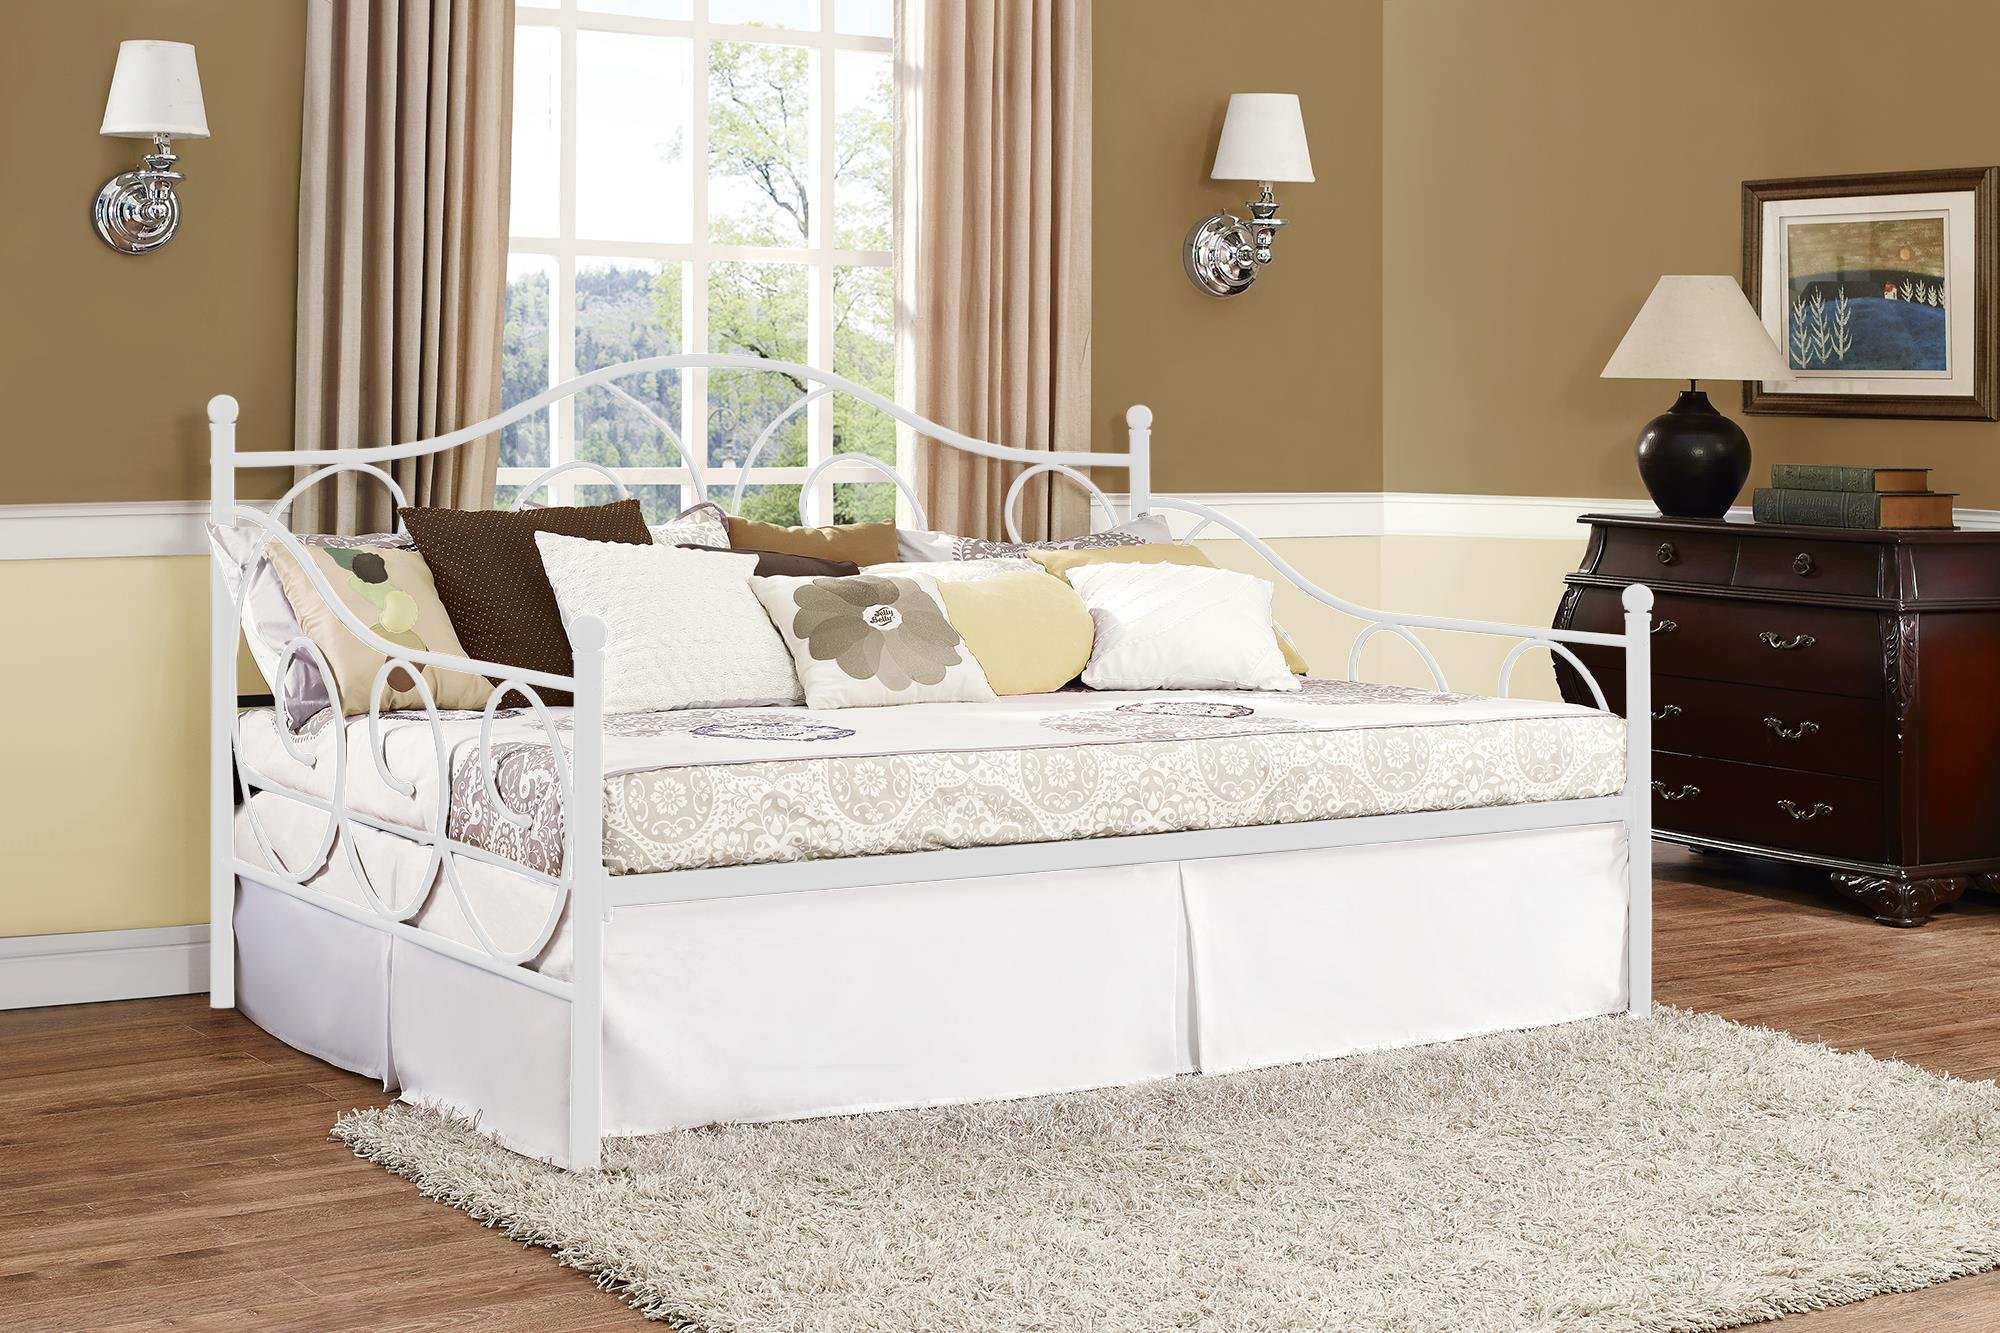 DHP Victoria Daybed Metal Frame, Multifunctional, Includes Metal Slats, Full Size, White by DHP